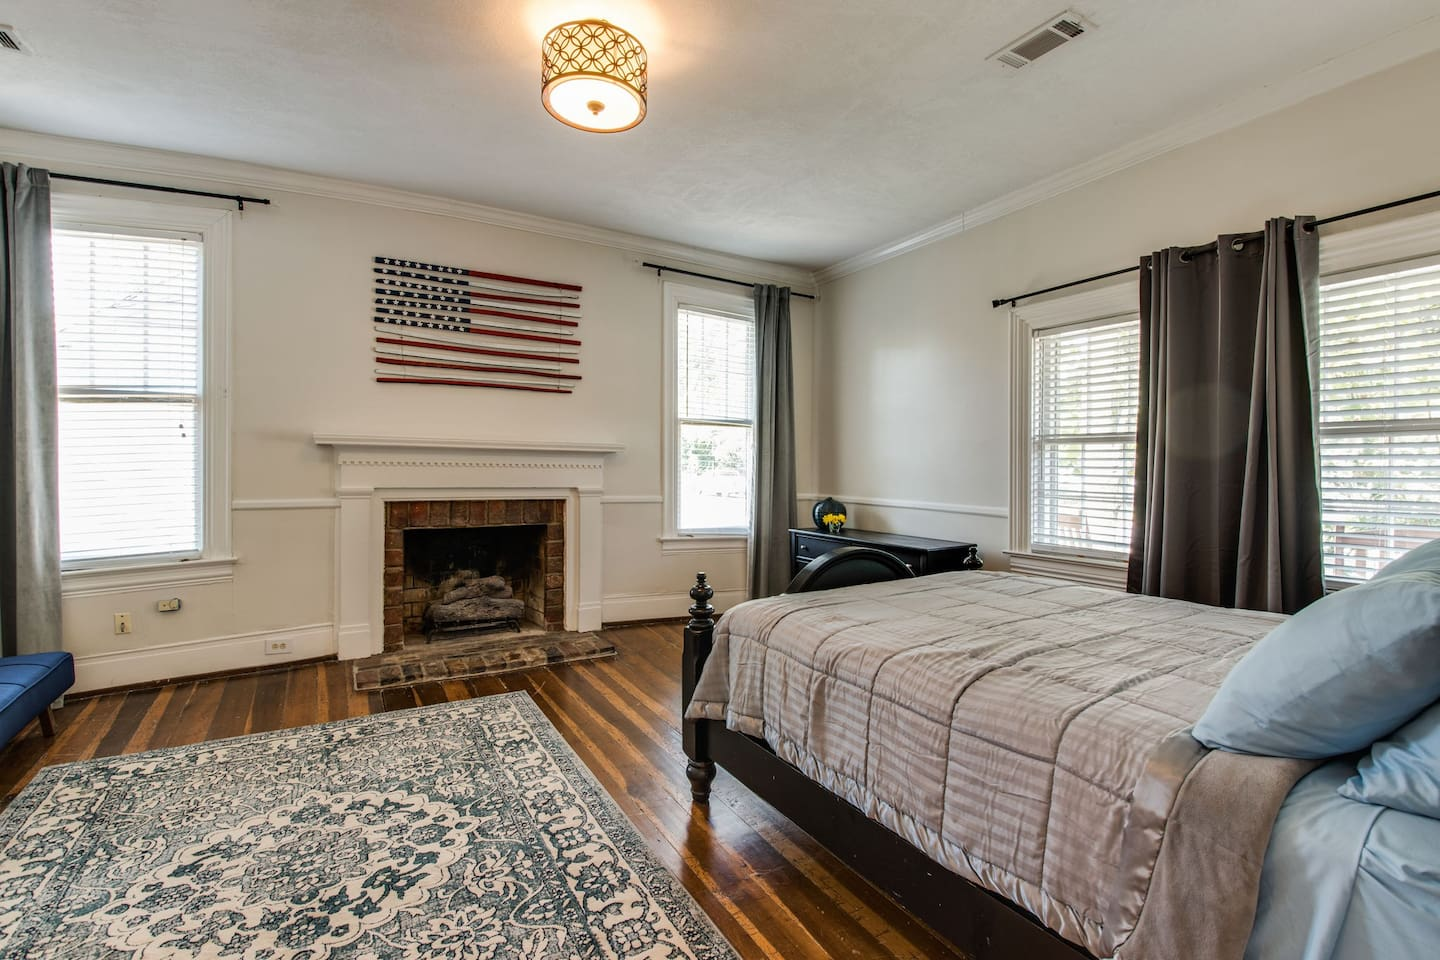 Master suite and ultimate comfort - come stay at Heart of Franklin House's one bedroom!